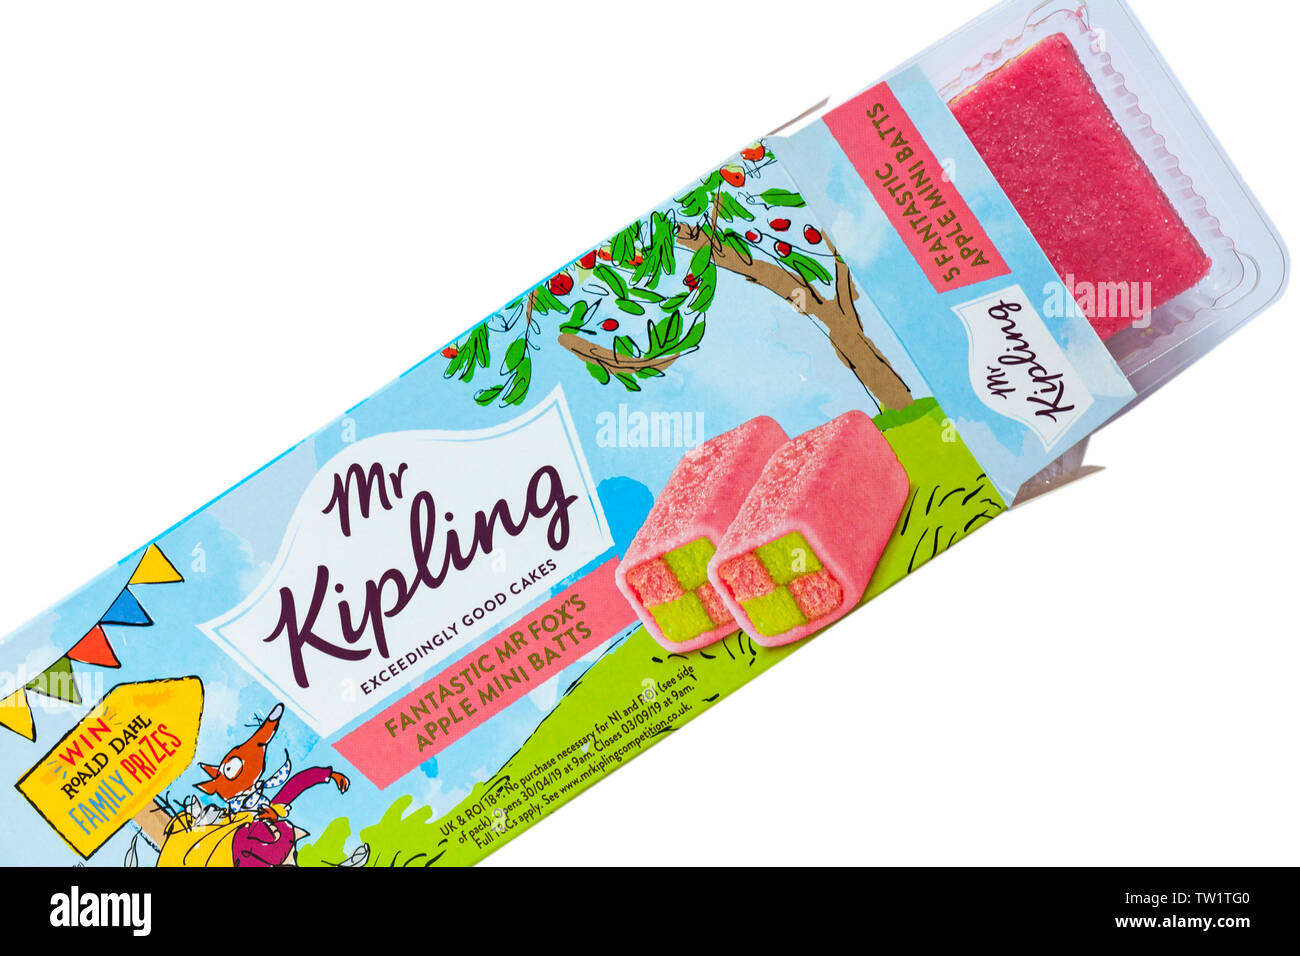 Mr Kipling Fantastic Mr Fox S Apple Mini Batts Opened To Show Contents Set On White Background Exceedingly Good Cakes Stock Photo Alamy